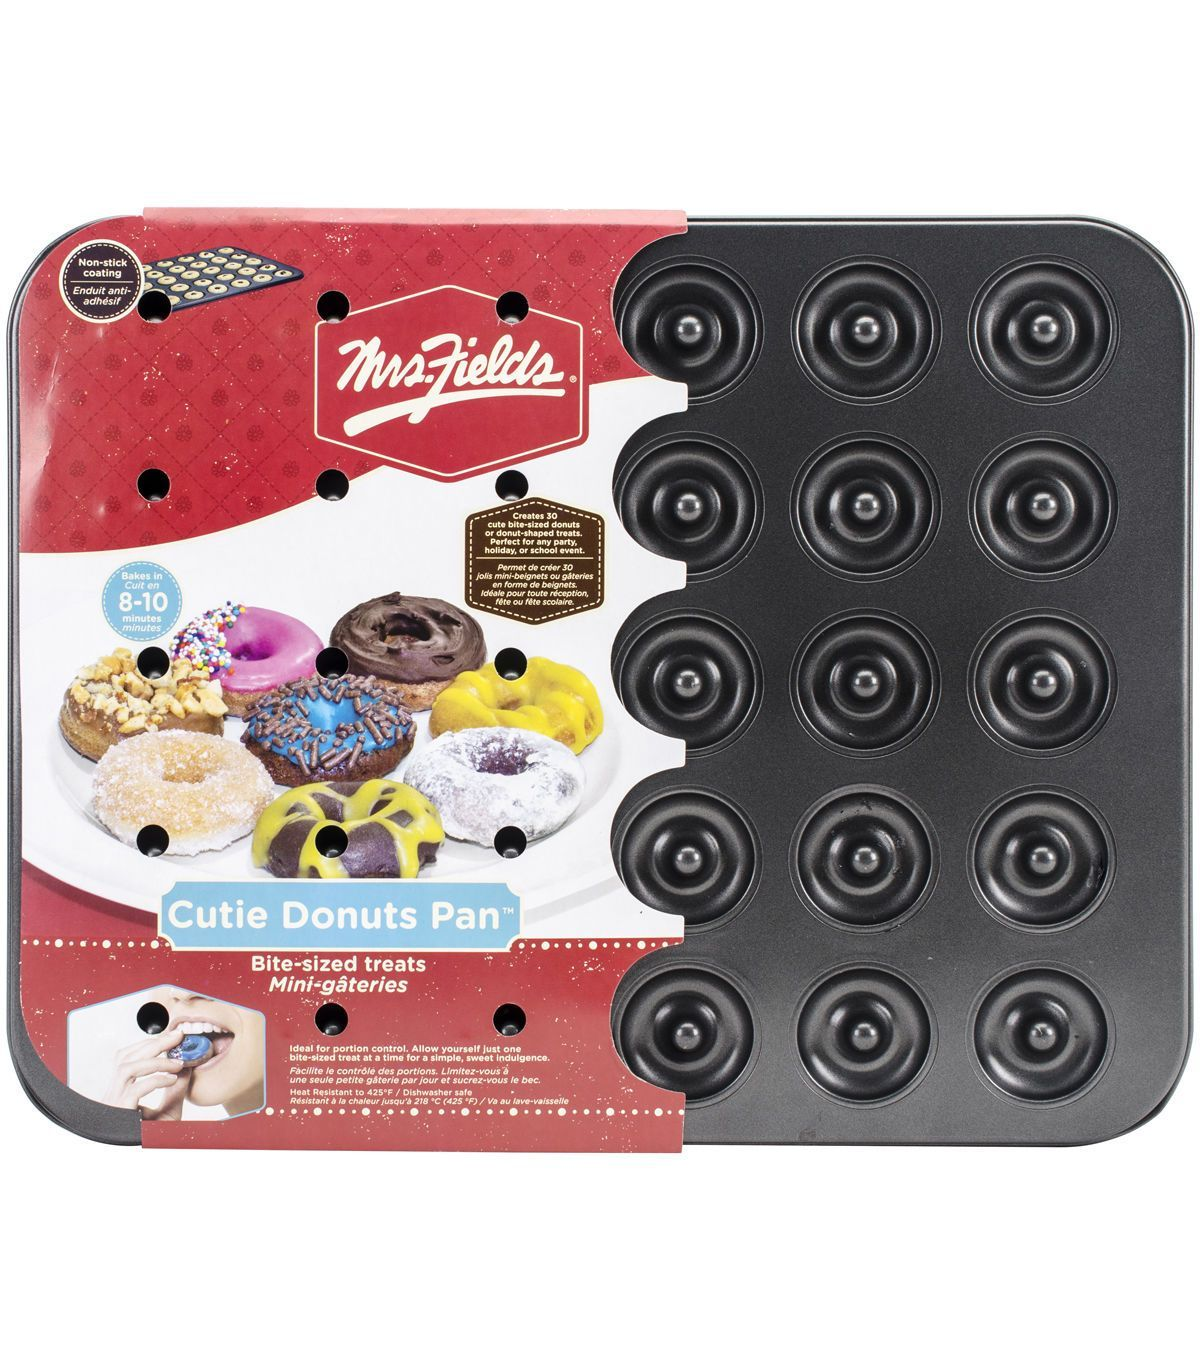 Mini Juegos De Cocina Love Cooking Company Mrs Fields Mini Donut Pan Cupcakes